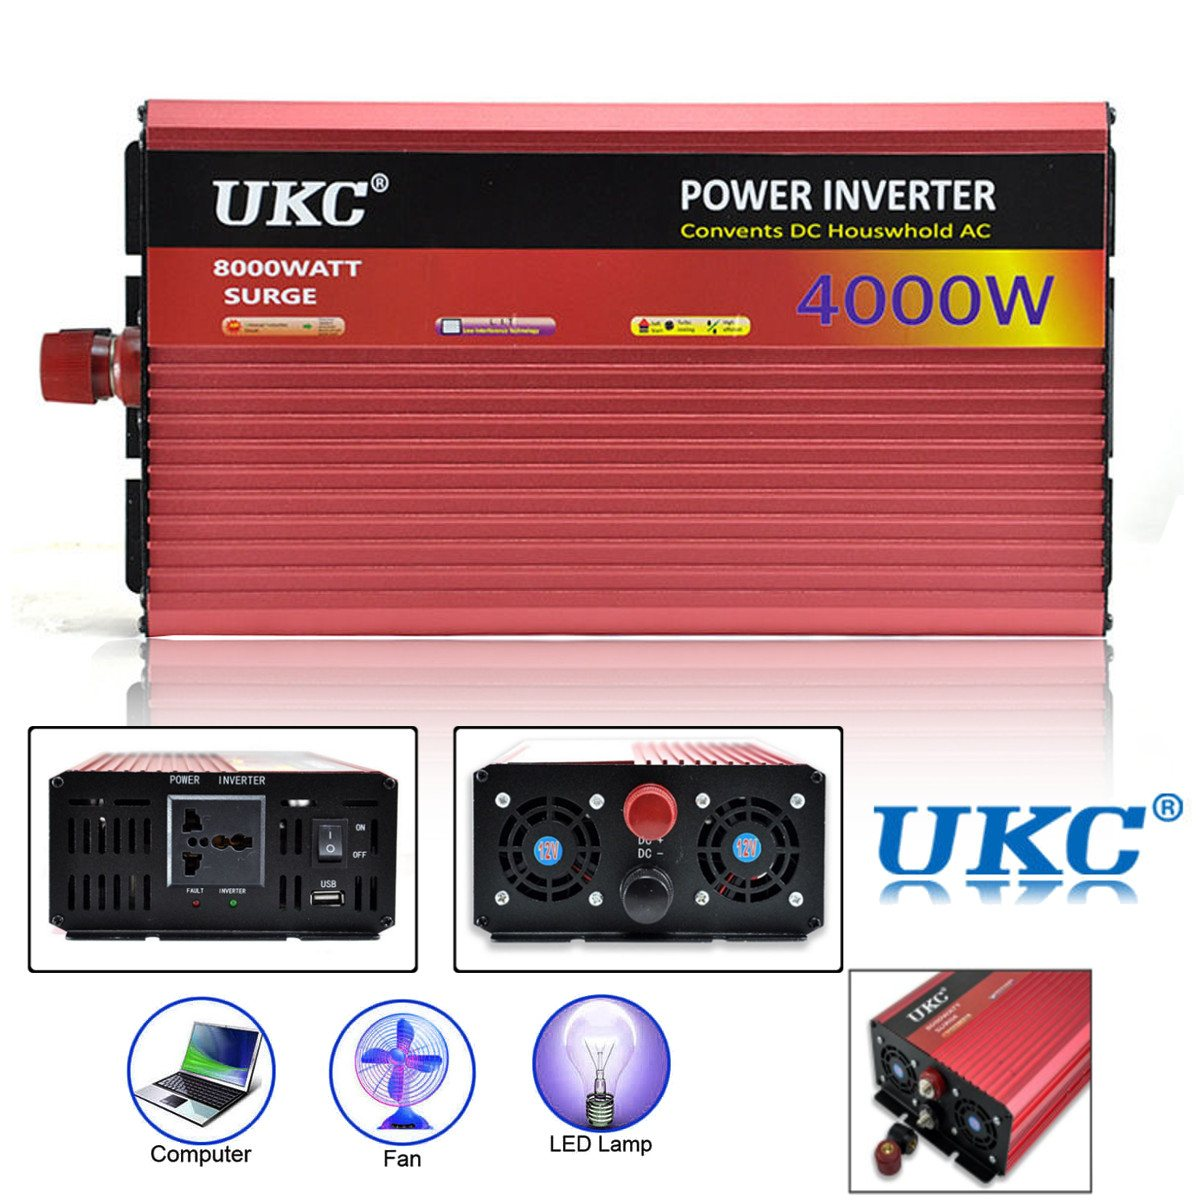 Car Power Inverter 12V 220V 4000W 8000W Peak Modified Sine Wave Power Inverter DC12V to AC220V Voltage Transformer Converter USB converter dc12v to ac220v inverter modified sine wave peak power 2000w sia1000w home solar power car inverter